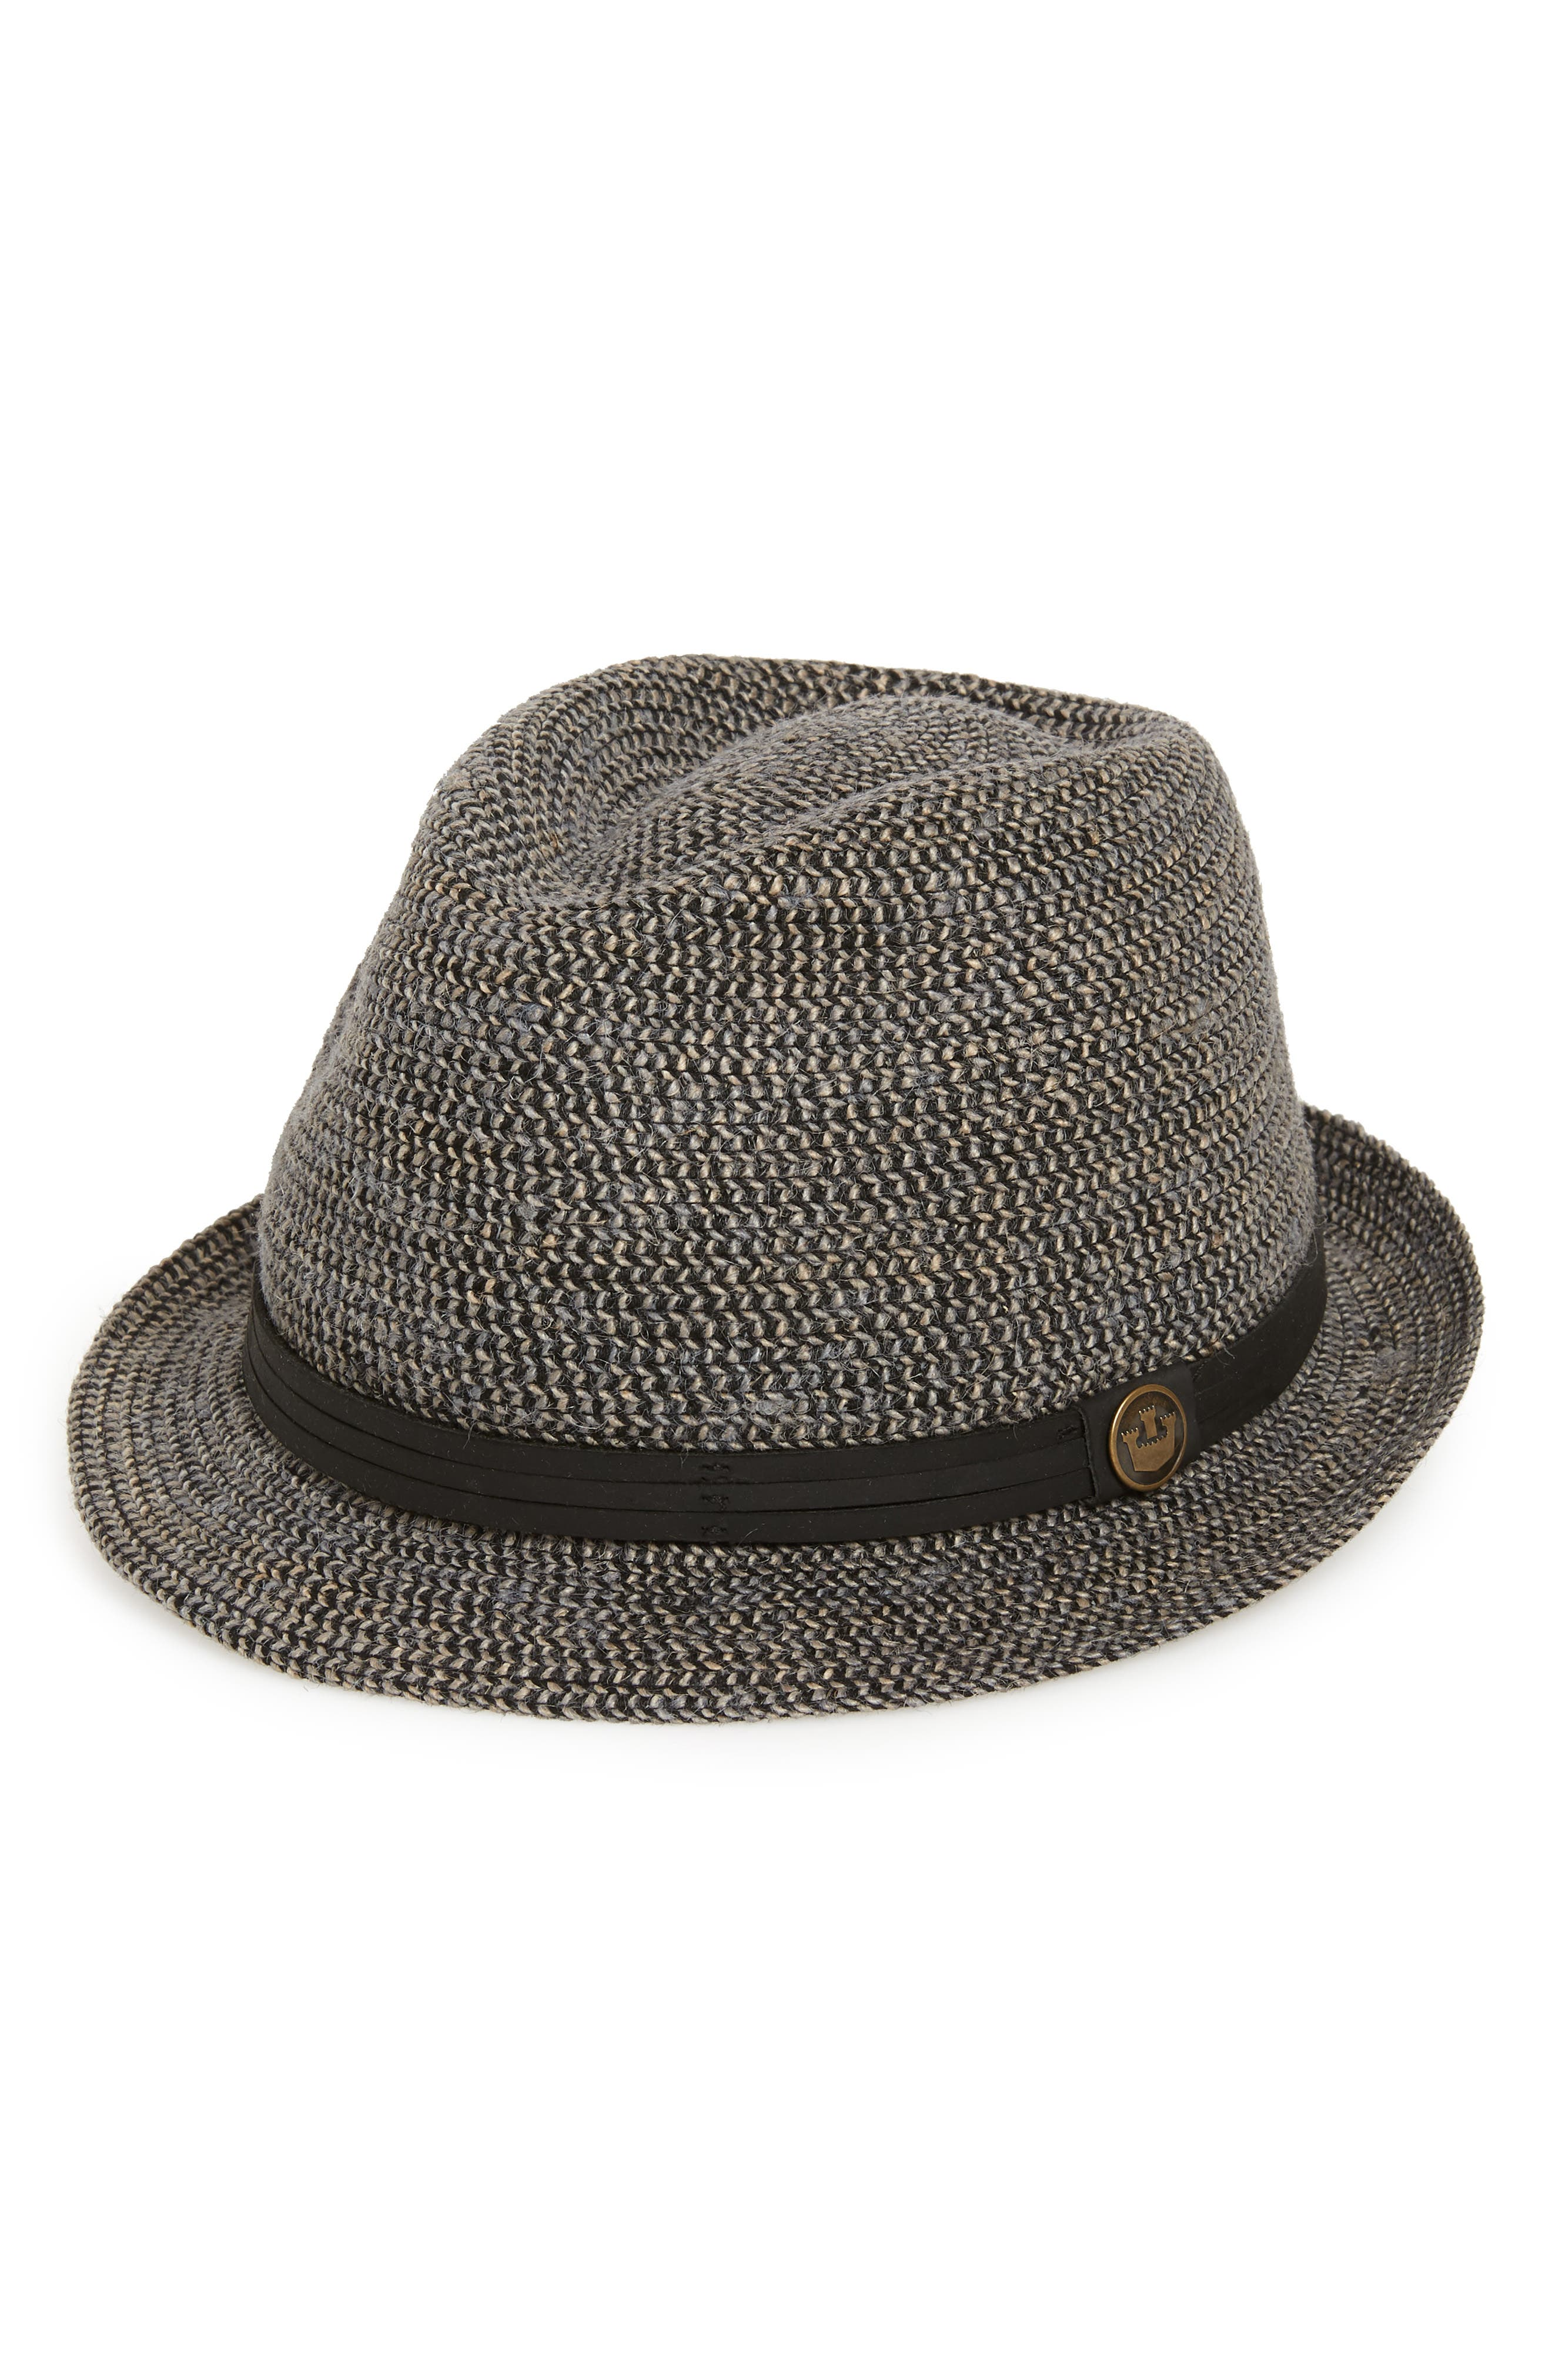 Laying Low Porkpie Hat,                             Main thumbnail 1, color,                             001